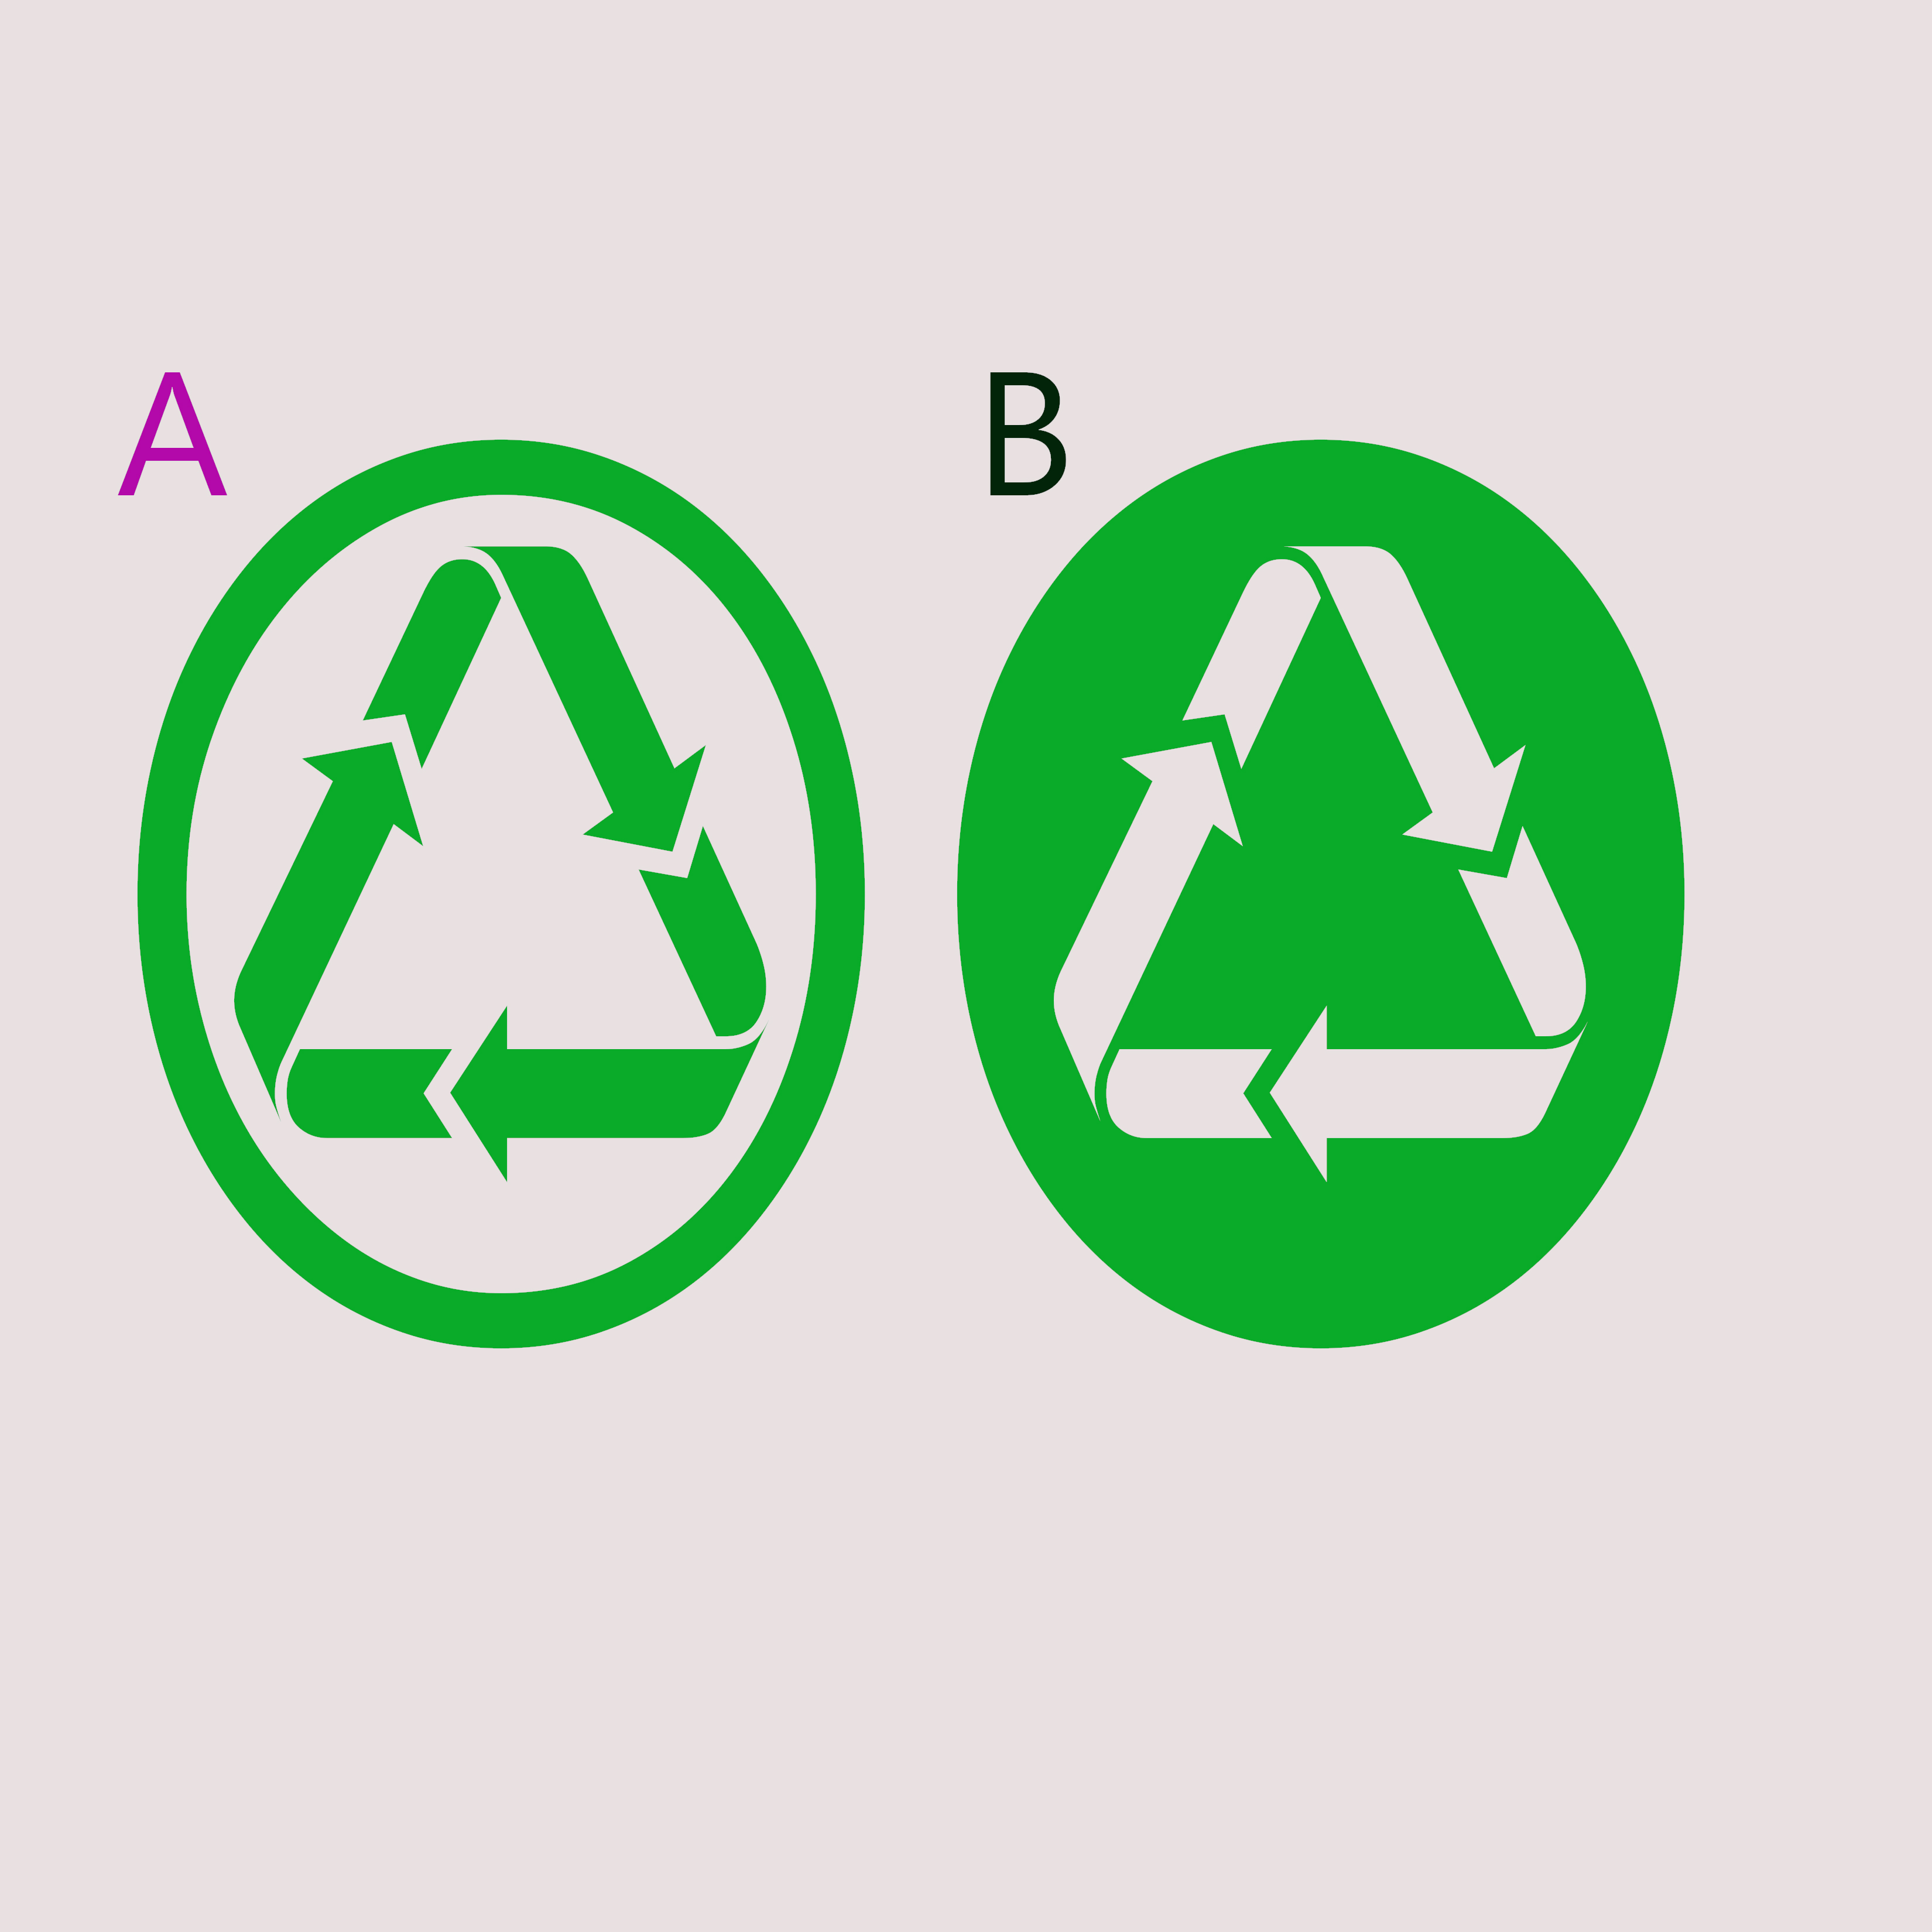 Recycle decal stickers replacements stickers ready to apply 6 recycle decal stickers replacements stickers ready to apply 6 inch recycle bin decal thumbnail biocorpaavc